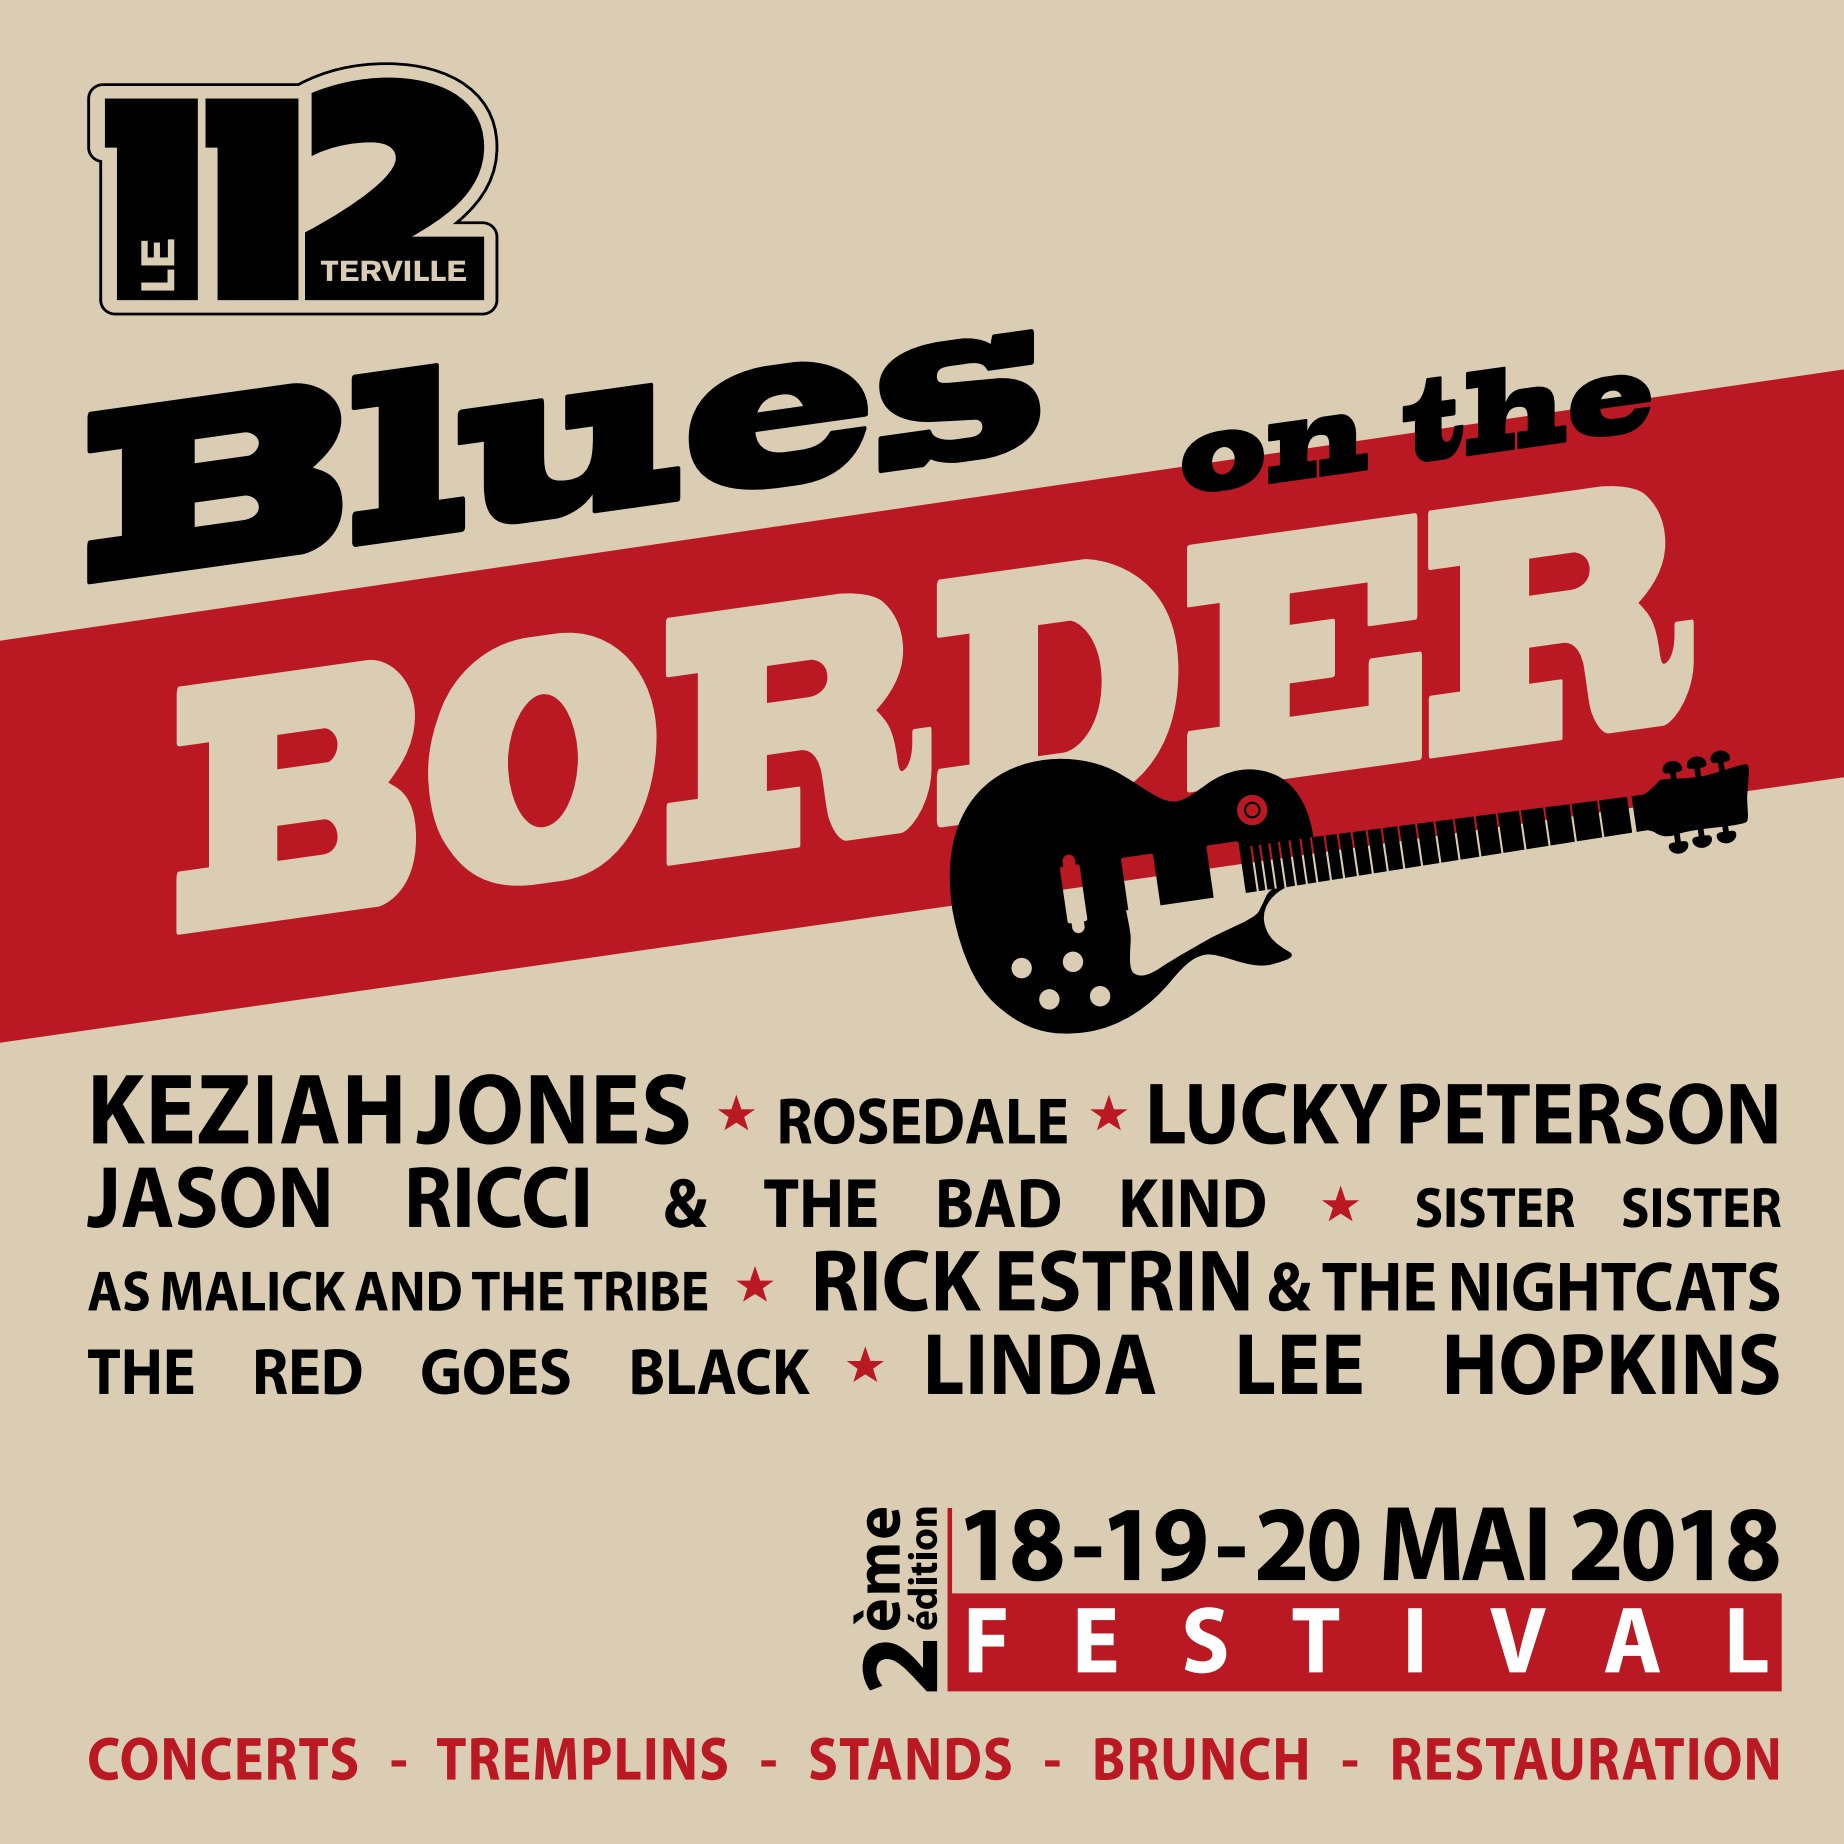 Festival BOB - Rosedale + Red Goes Black + LUCKY PETERSON